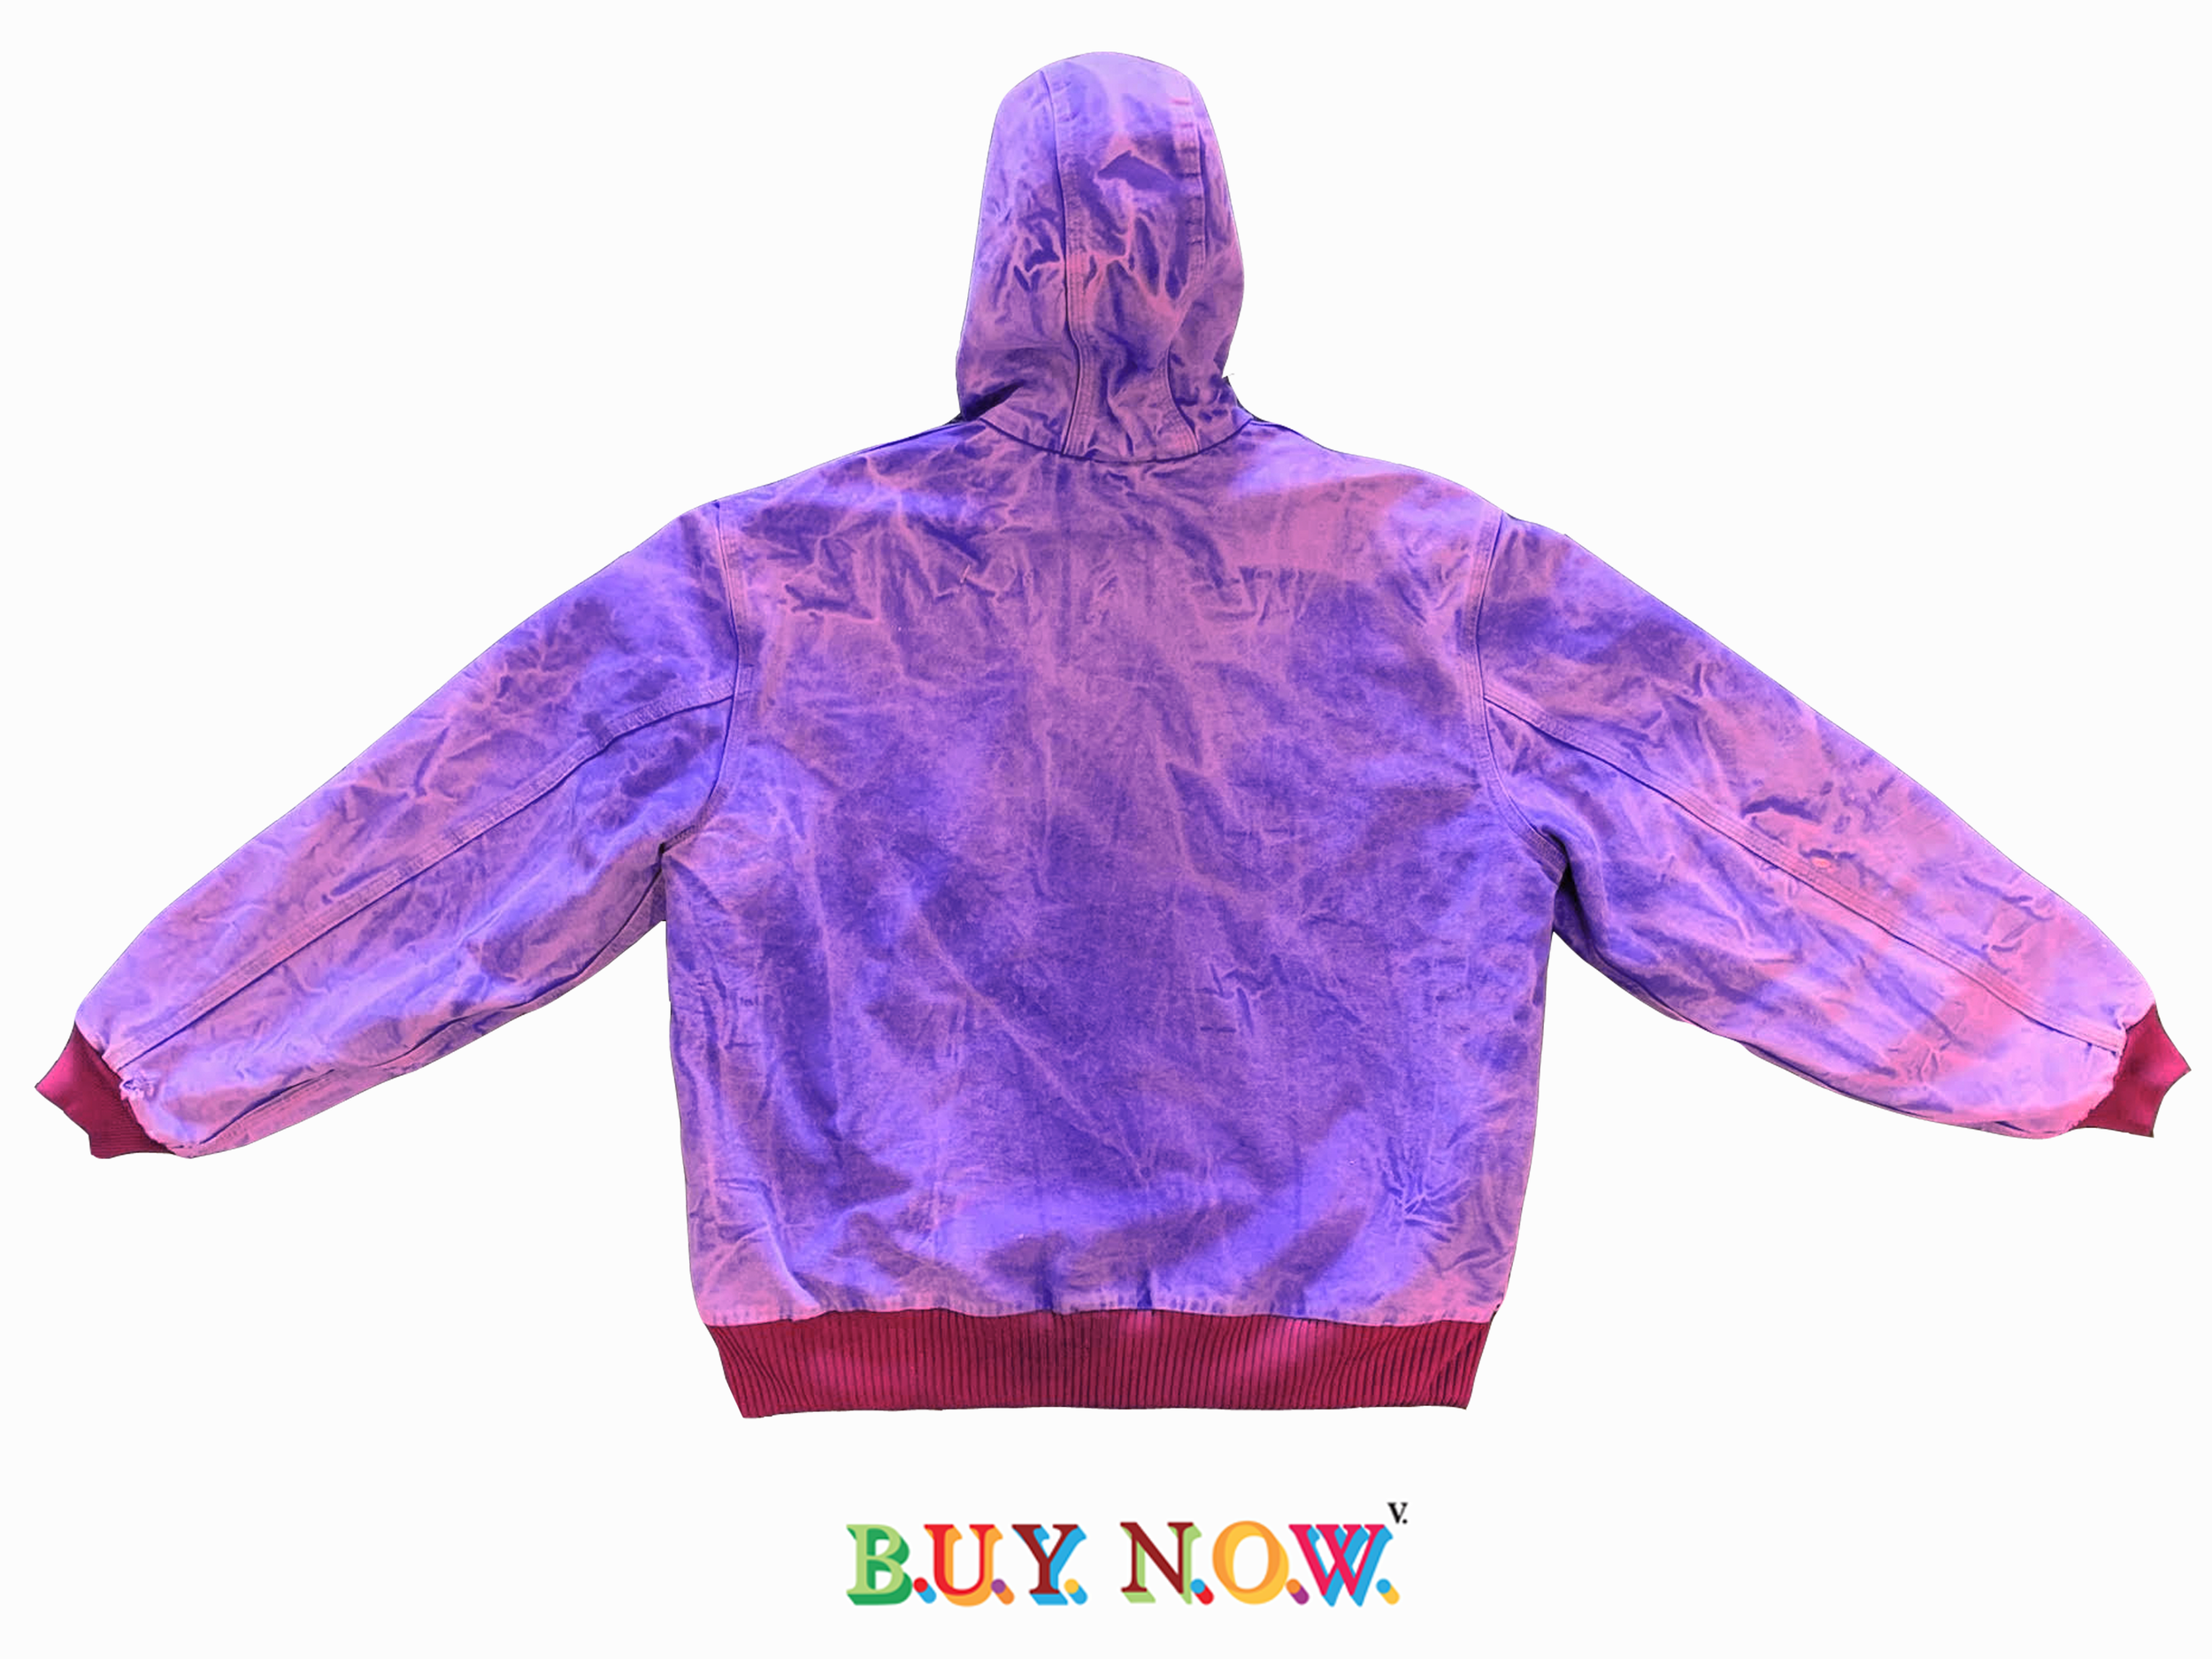 FRUITION-CARHARTT-FRUITION-PURPLE-BUY-NOW.png